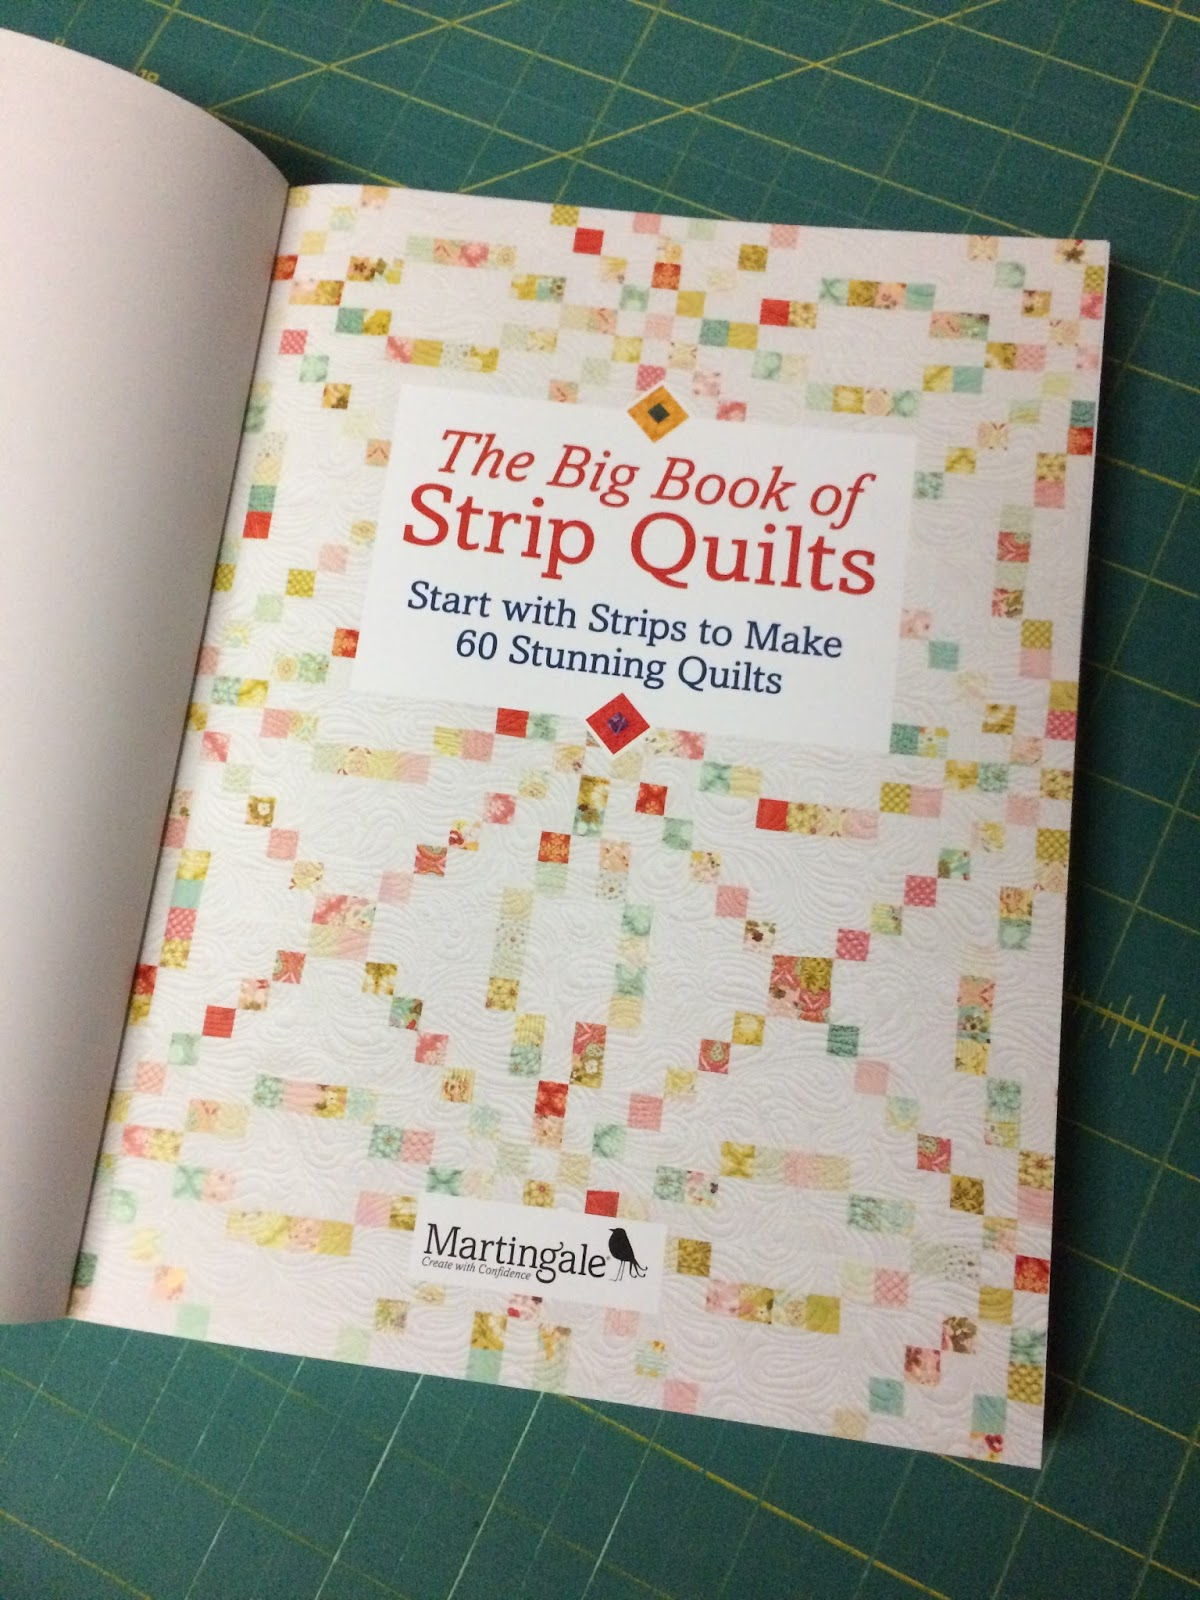 So ya, all in all, pretty amazing day when this arrived!!!! The Big Book of Strip  Quilts ...